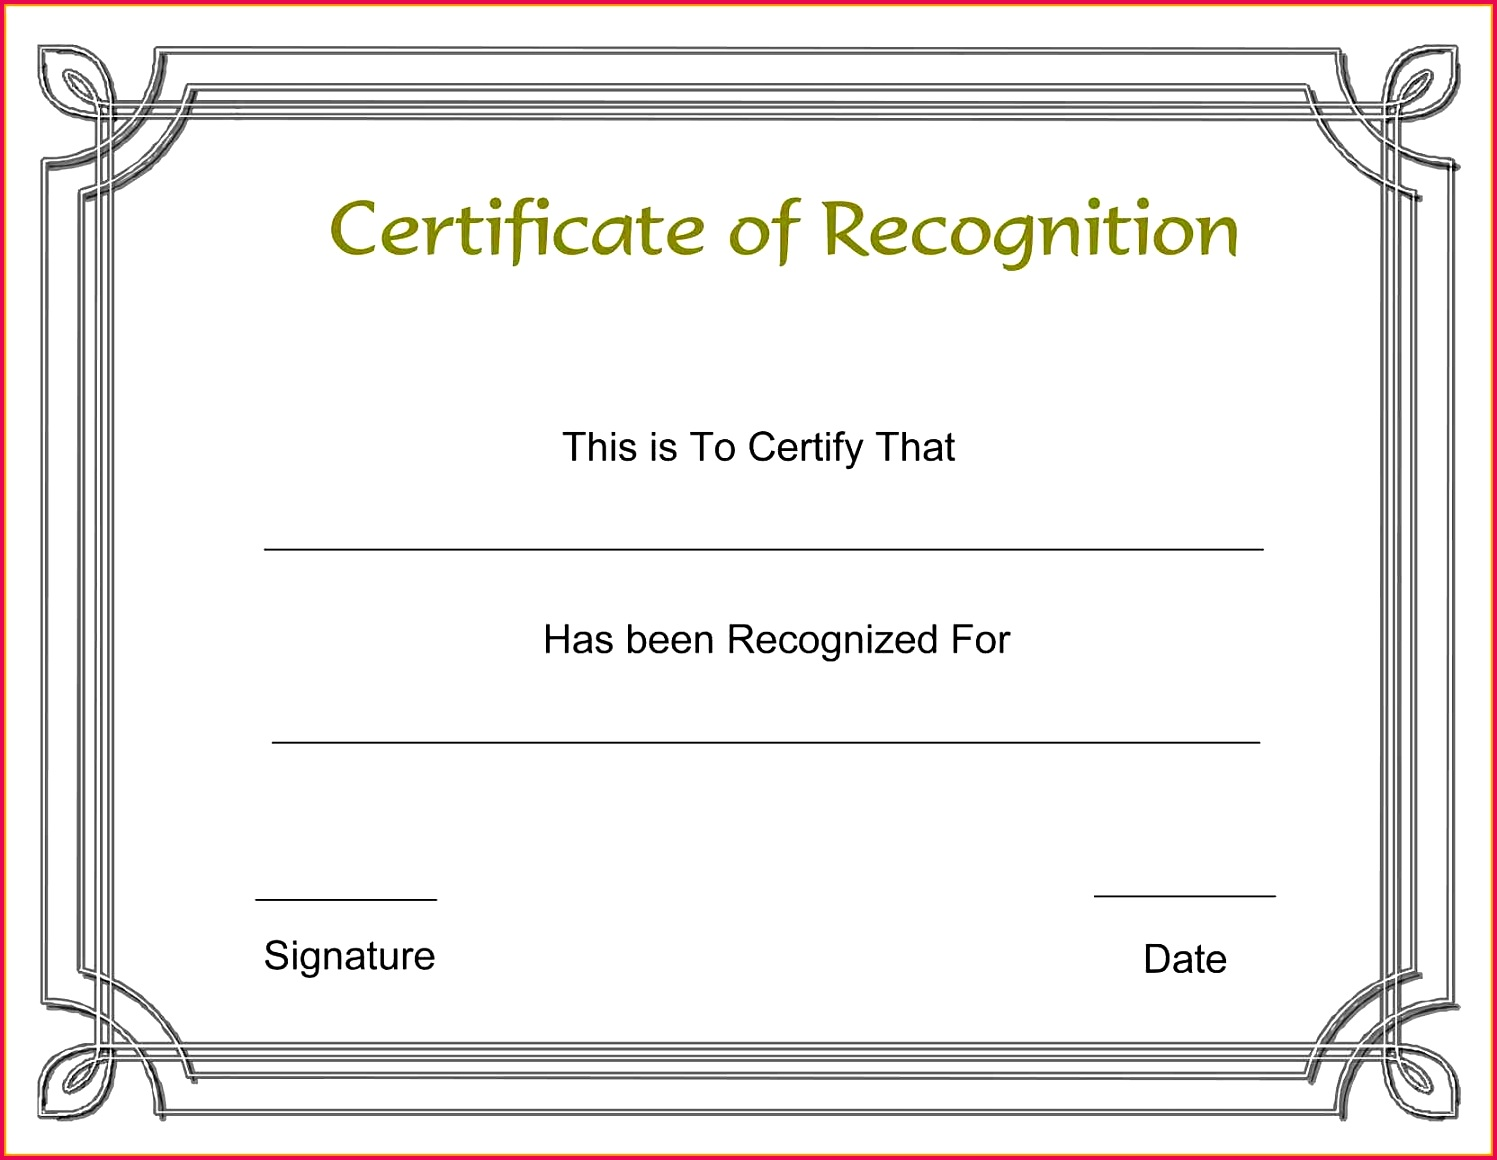 009 free certificate templates word of award template border inside with music